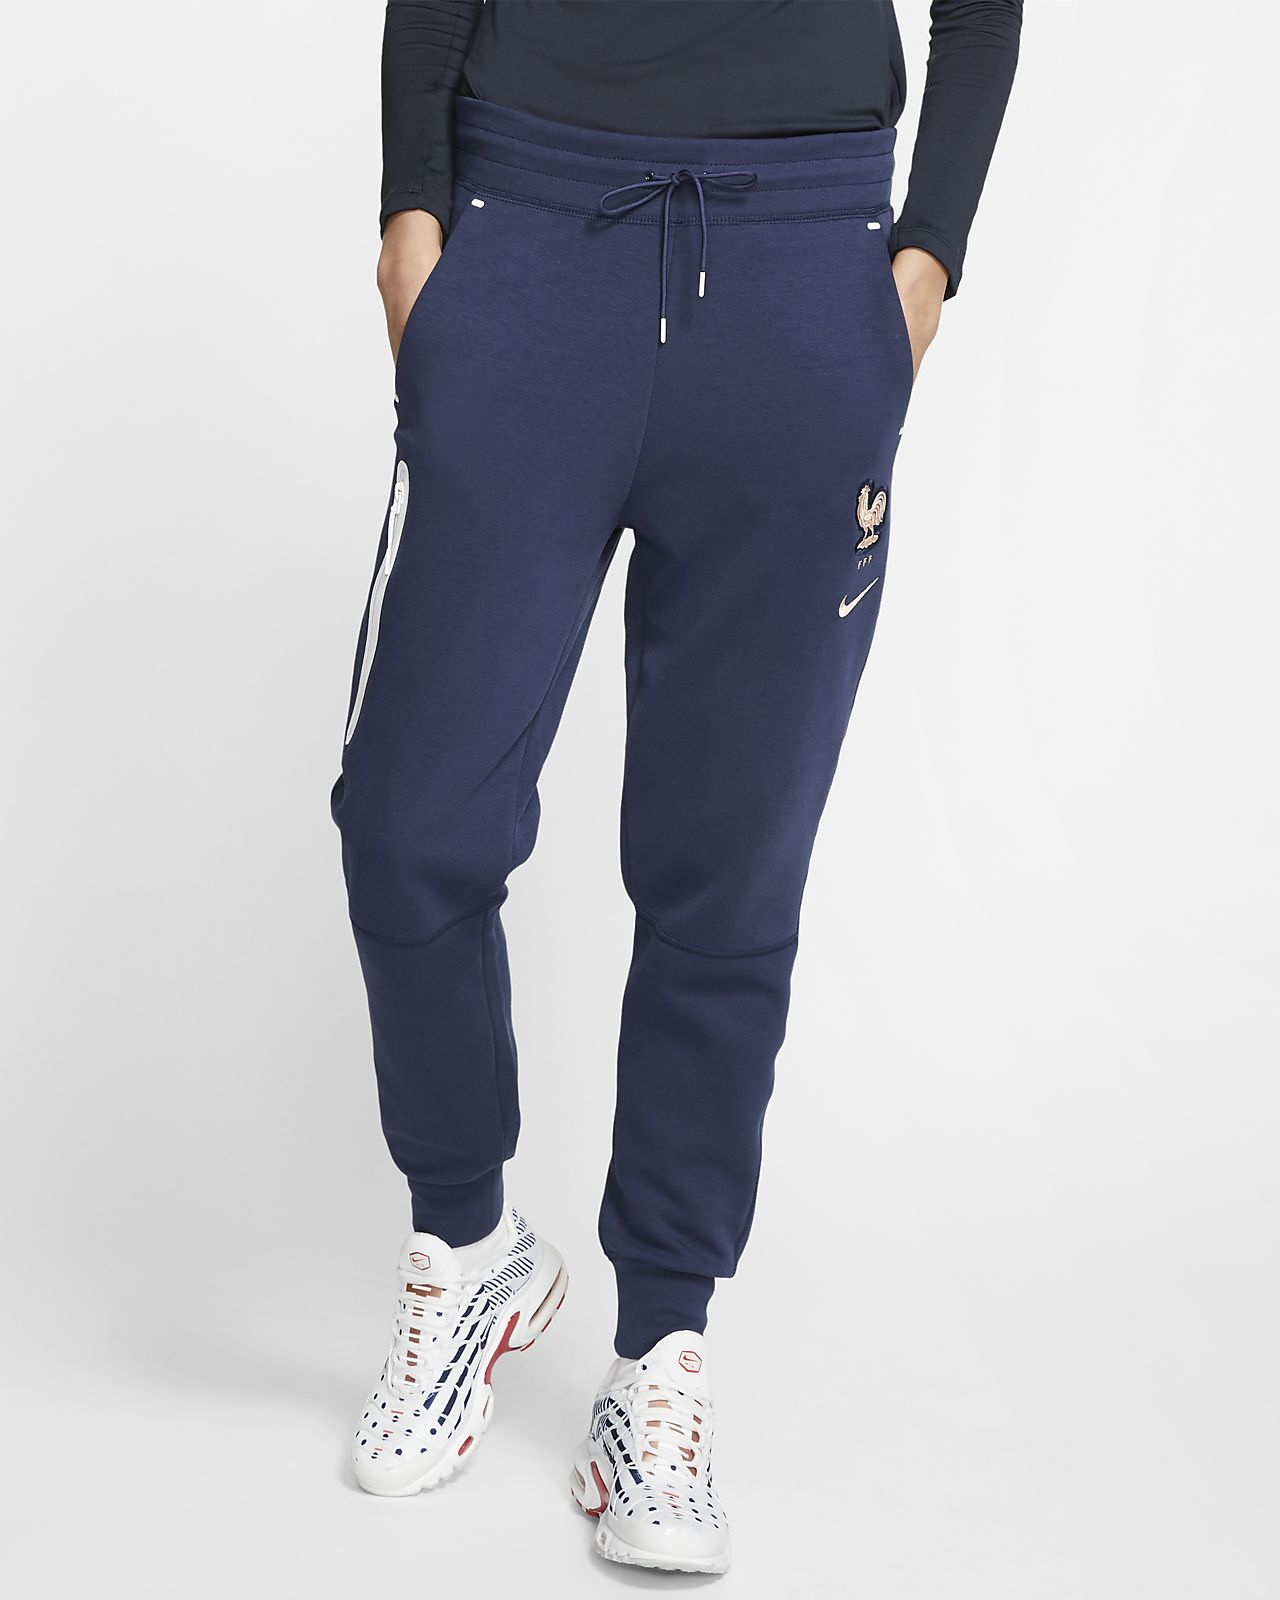 FFF Tech Fleece Damen-Fußballhose